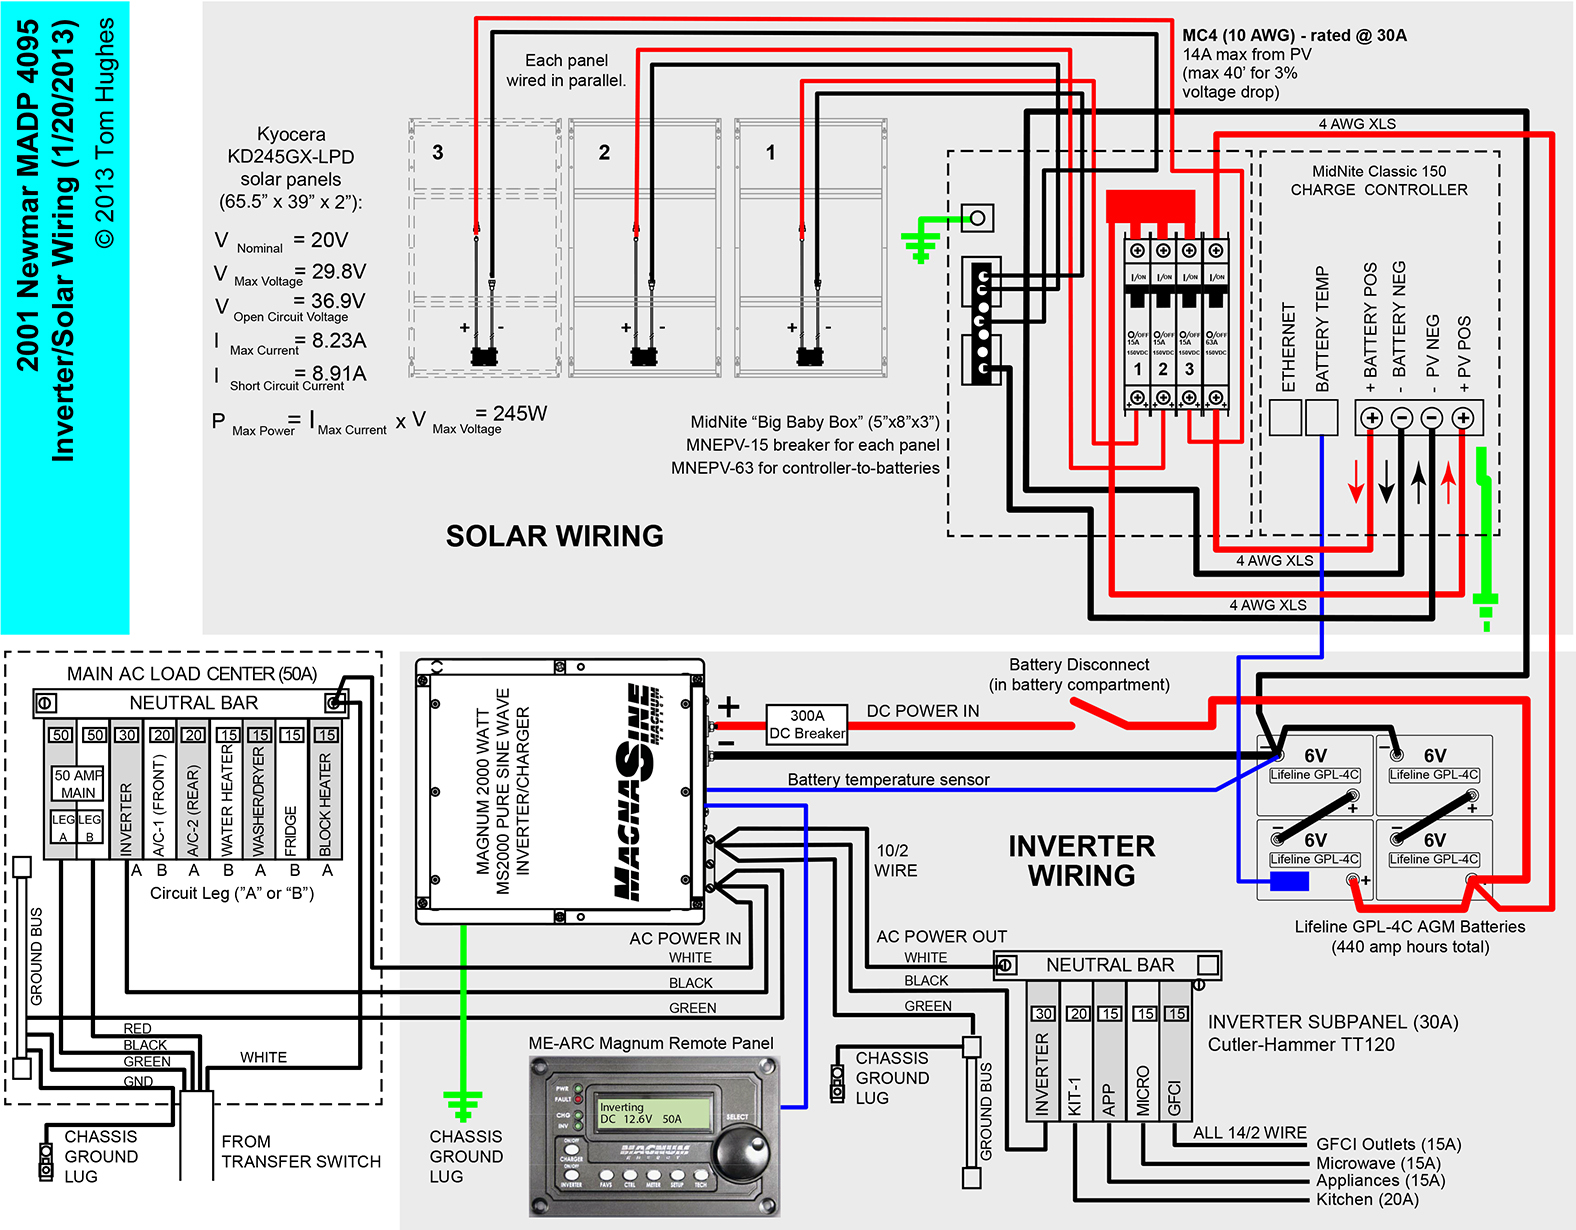 ms2000_newmar_inverter_wiring_01_20_2013 rv inverter diagram rv inverter transfer switch \u2022 wiring diagrams marine inverter wiring diagram at mifinder.co